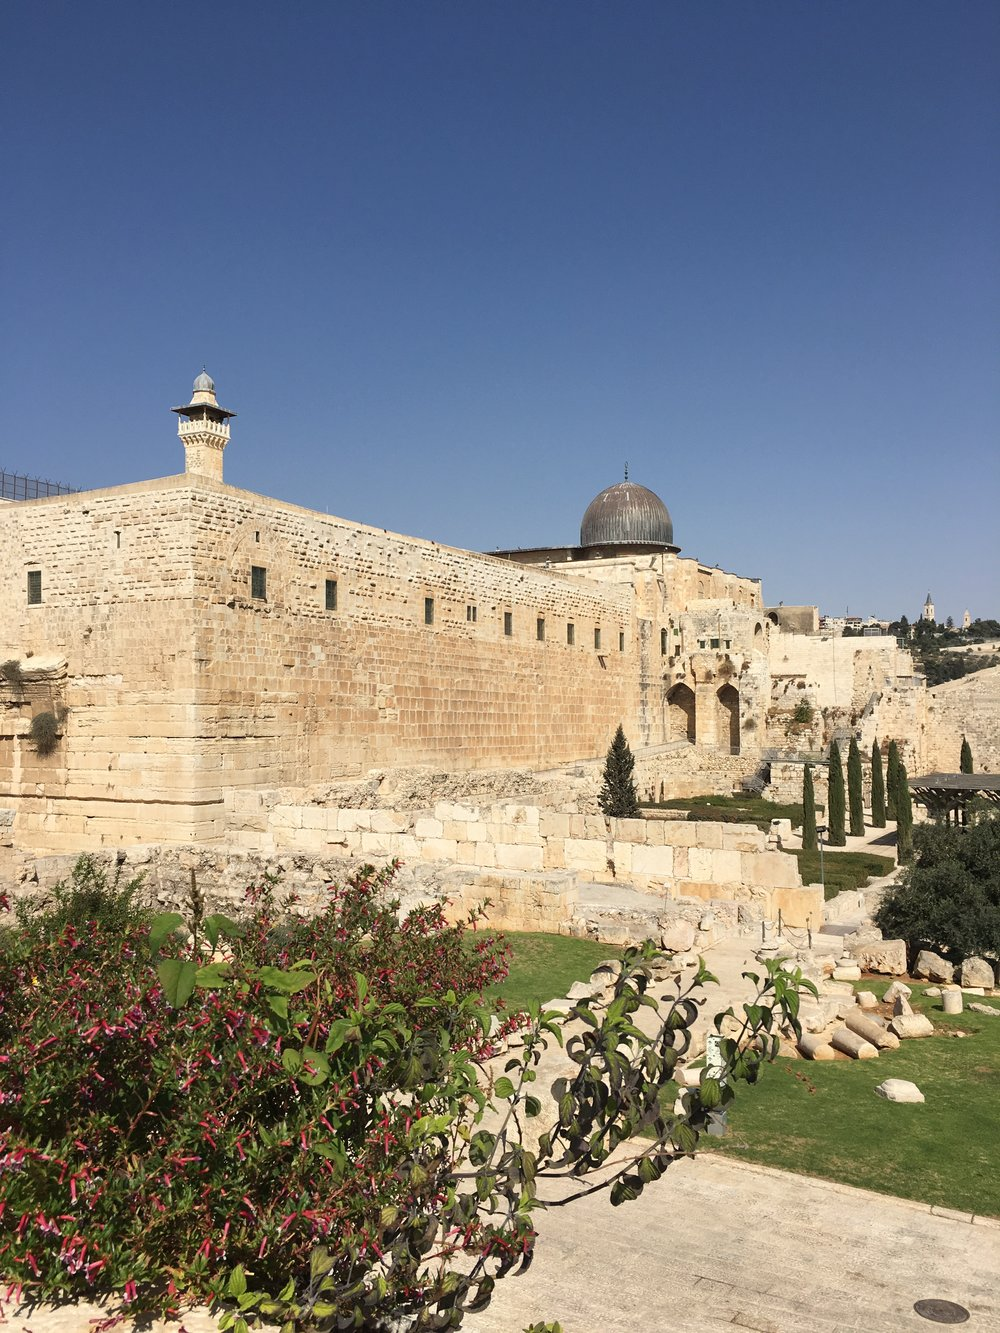 Mosque of the Dome of the Rock, housing the Foundation Rock: perhaps second most holy of Muslim sites, after Mecca